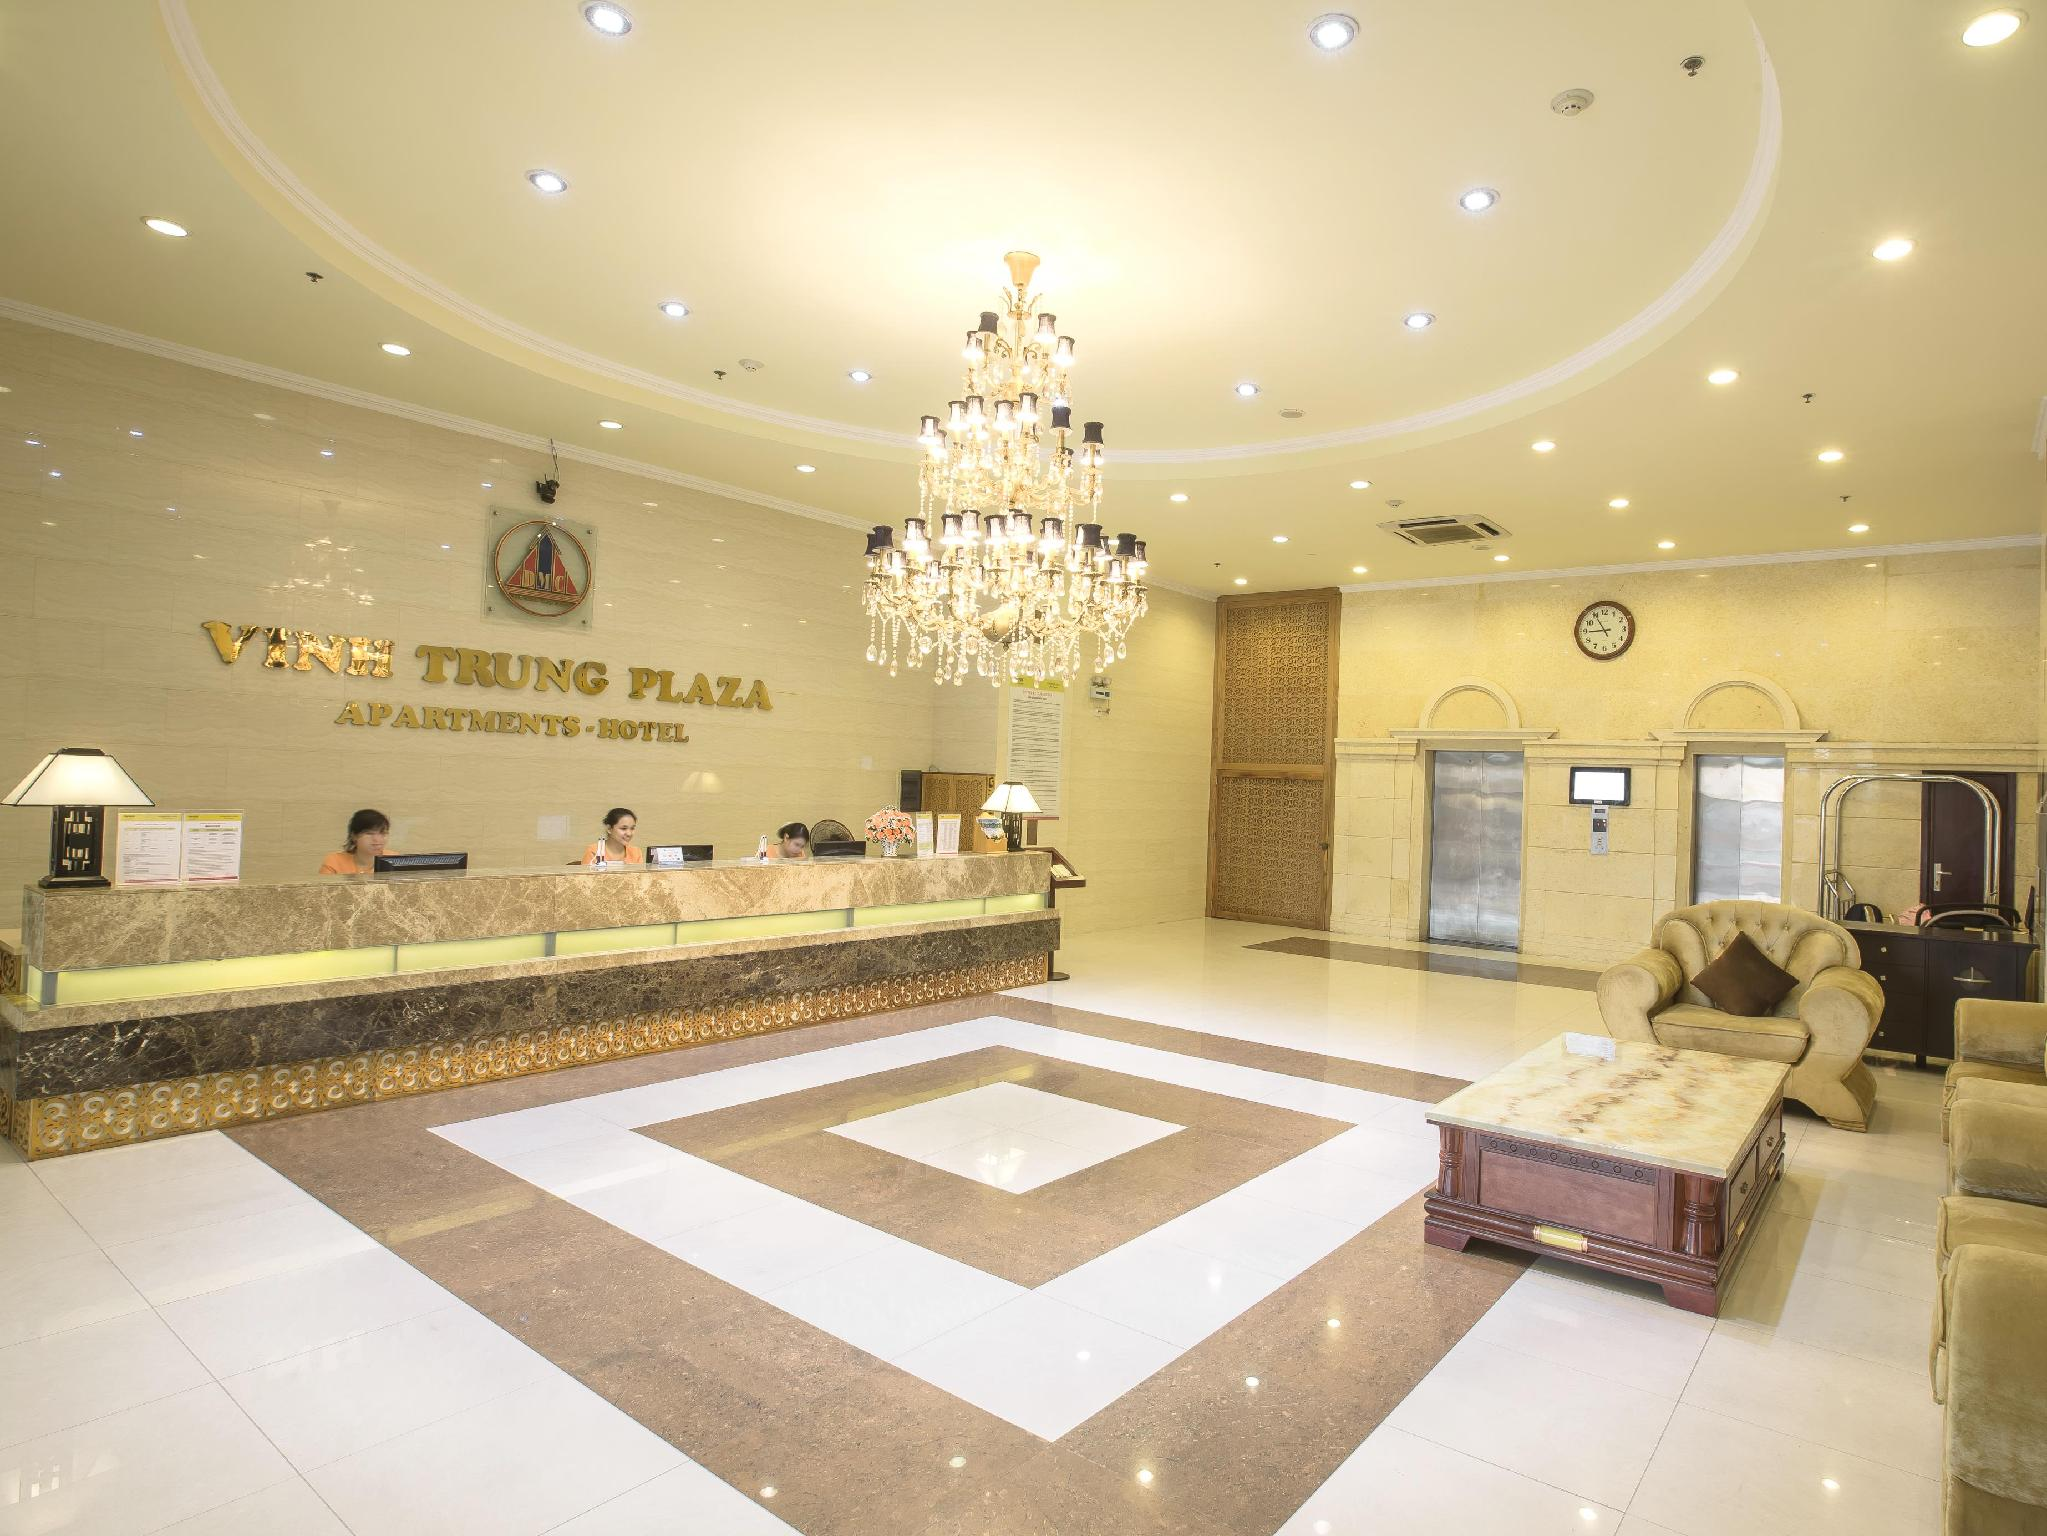 Hotell Vinh Trung Plaza Apartments and Hotel